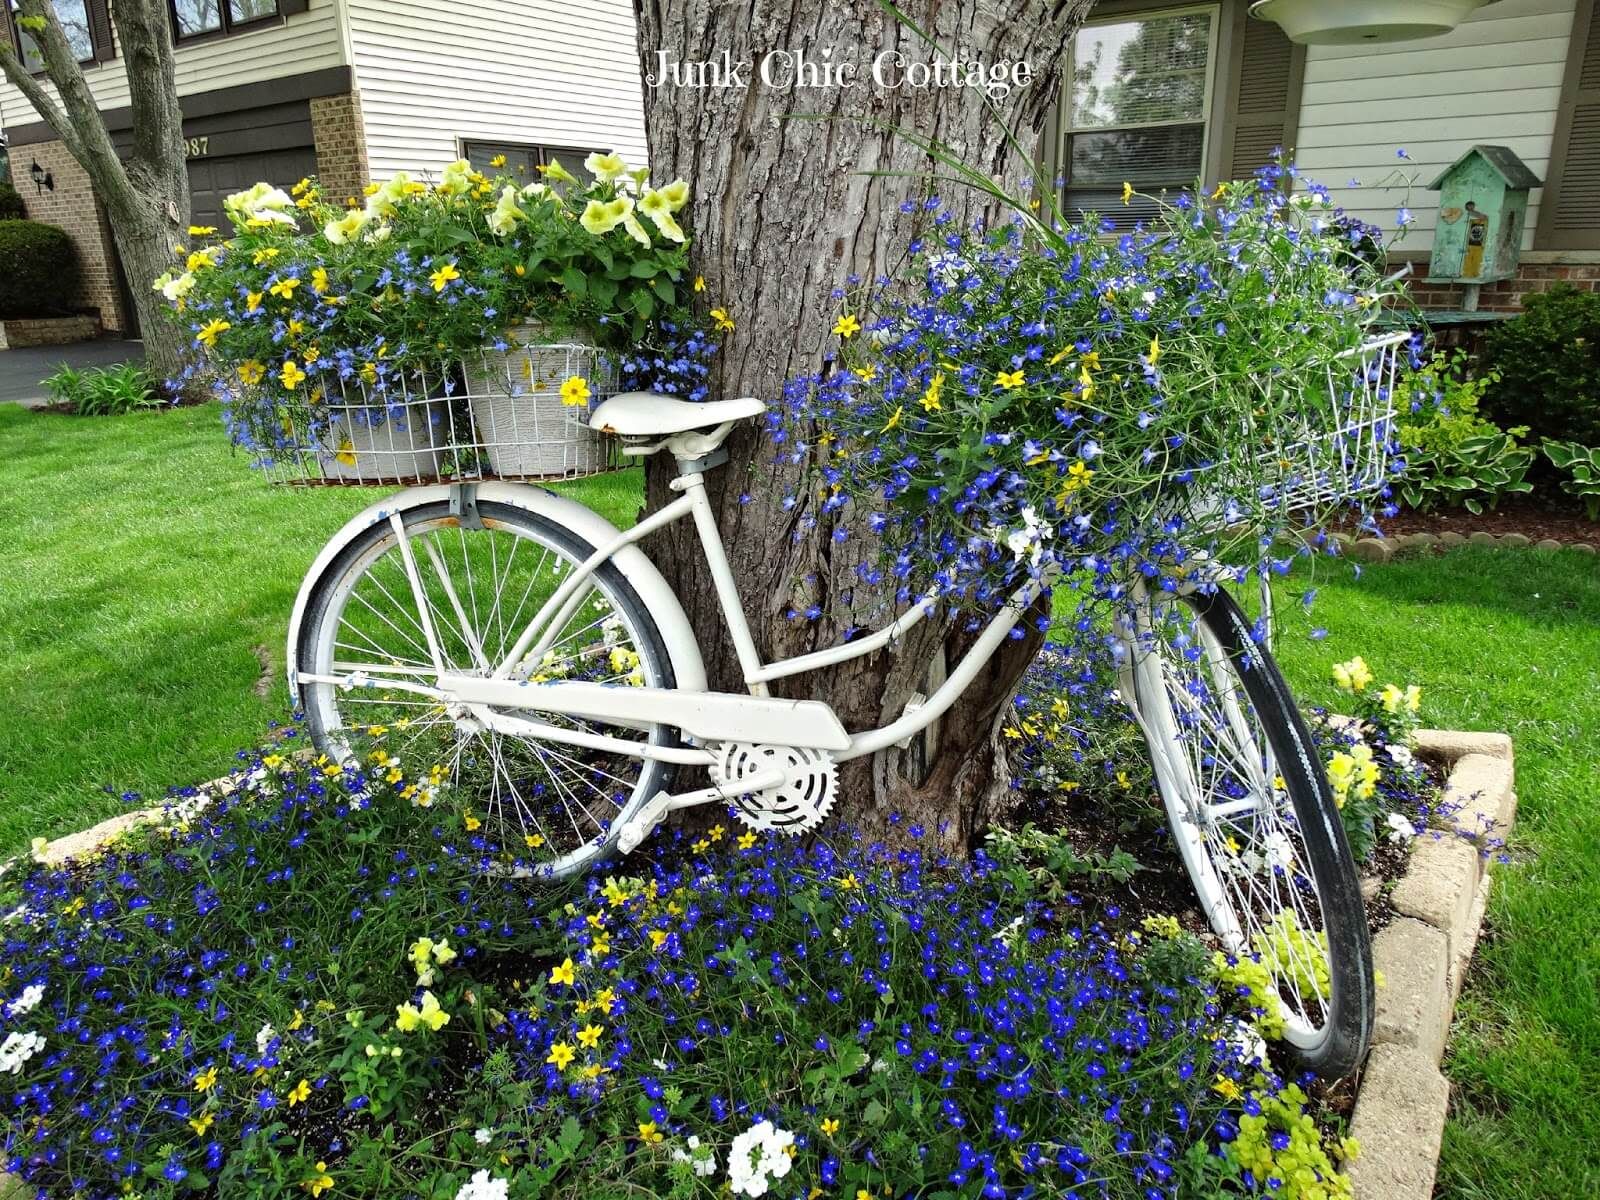 Bicycle Baskets Overflowing with Blossoms